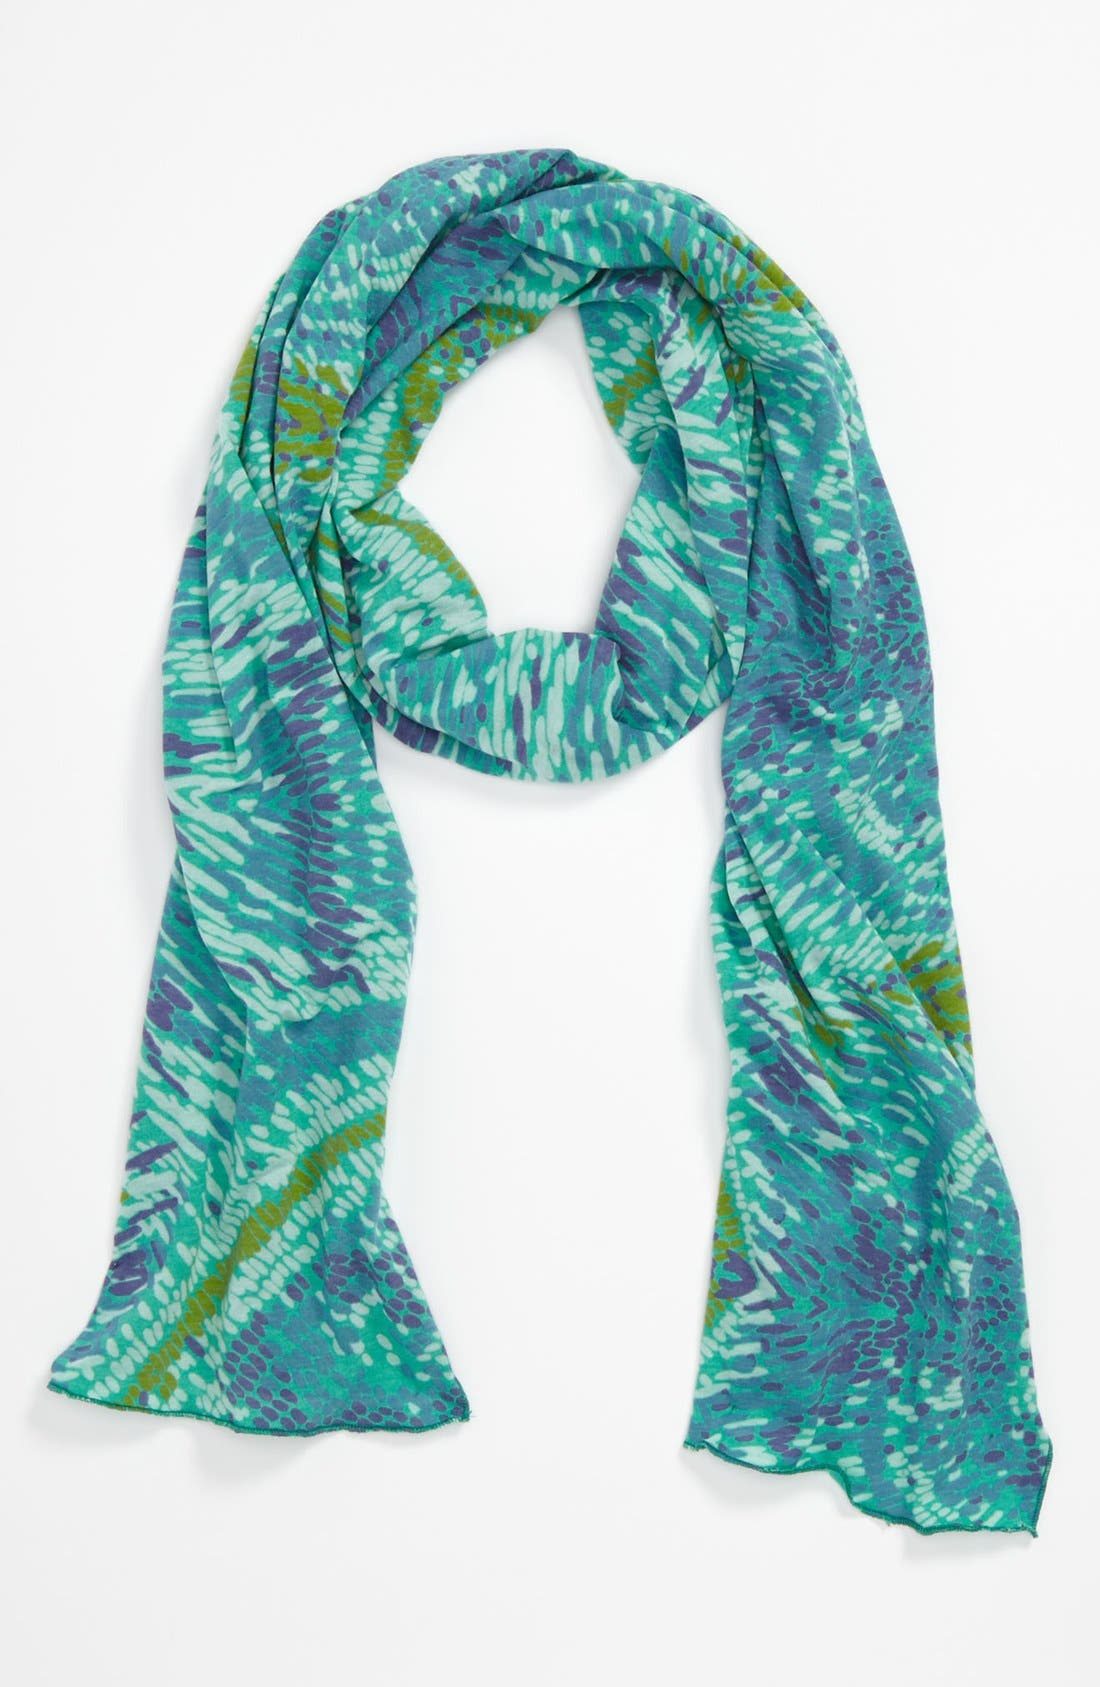 Alternate Image 1 Selected - Sustainable Kids Organic Cotton & Recycled Plastic Bottle Scarf (Girls)